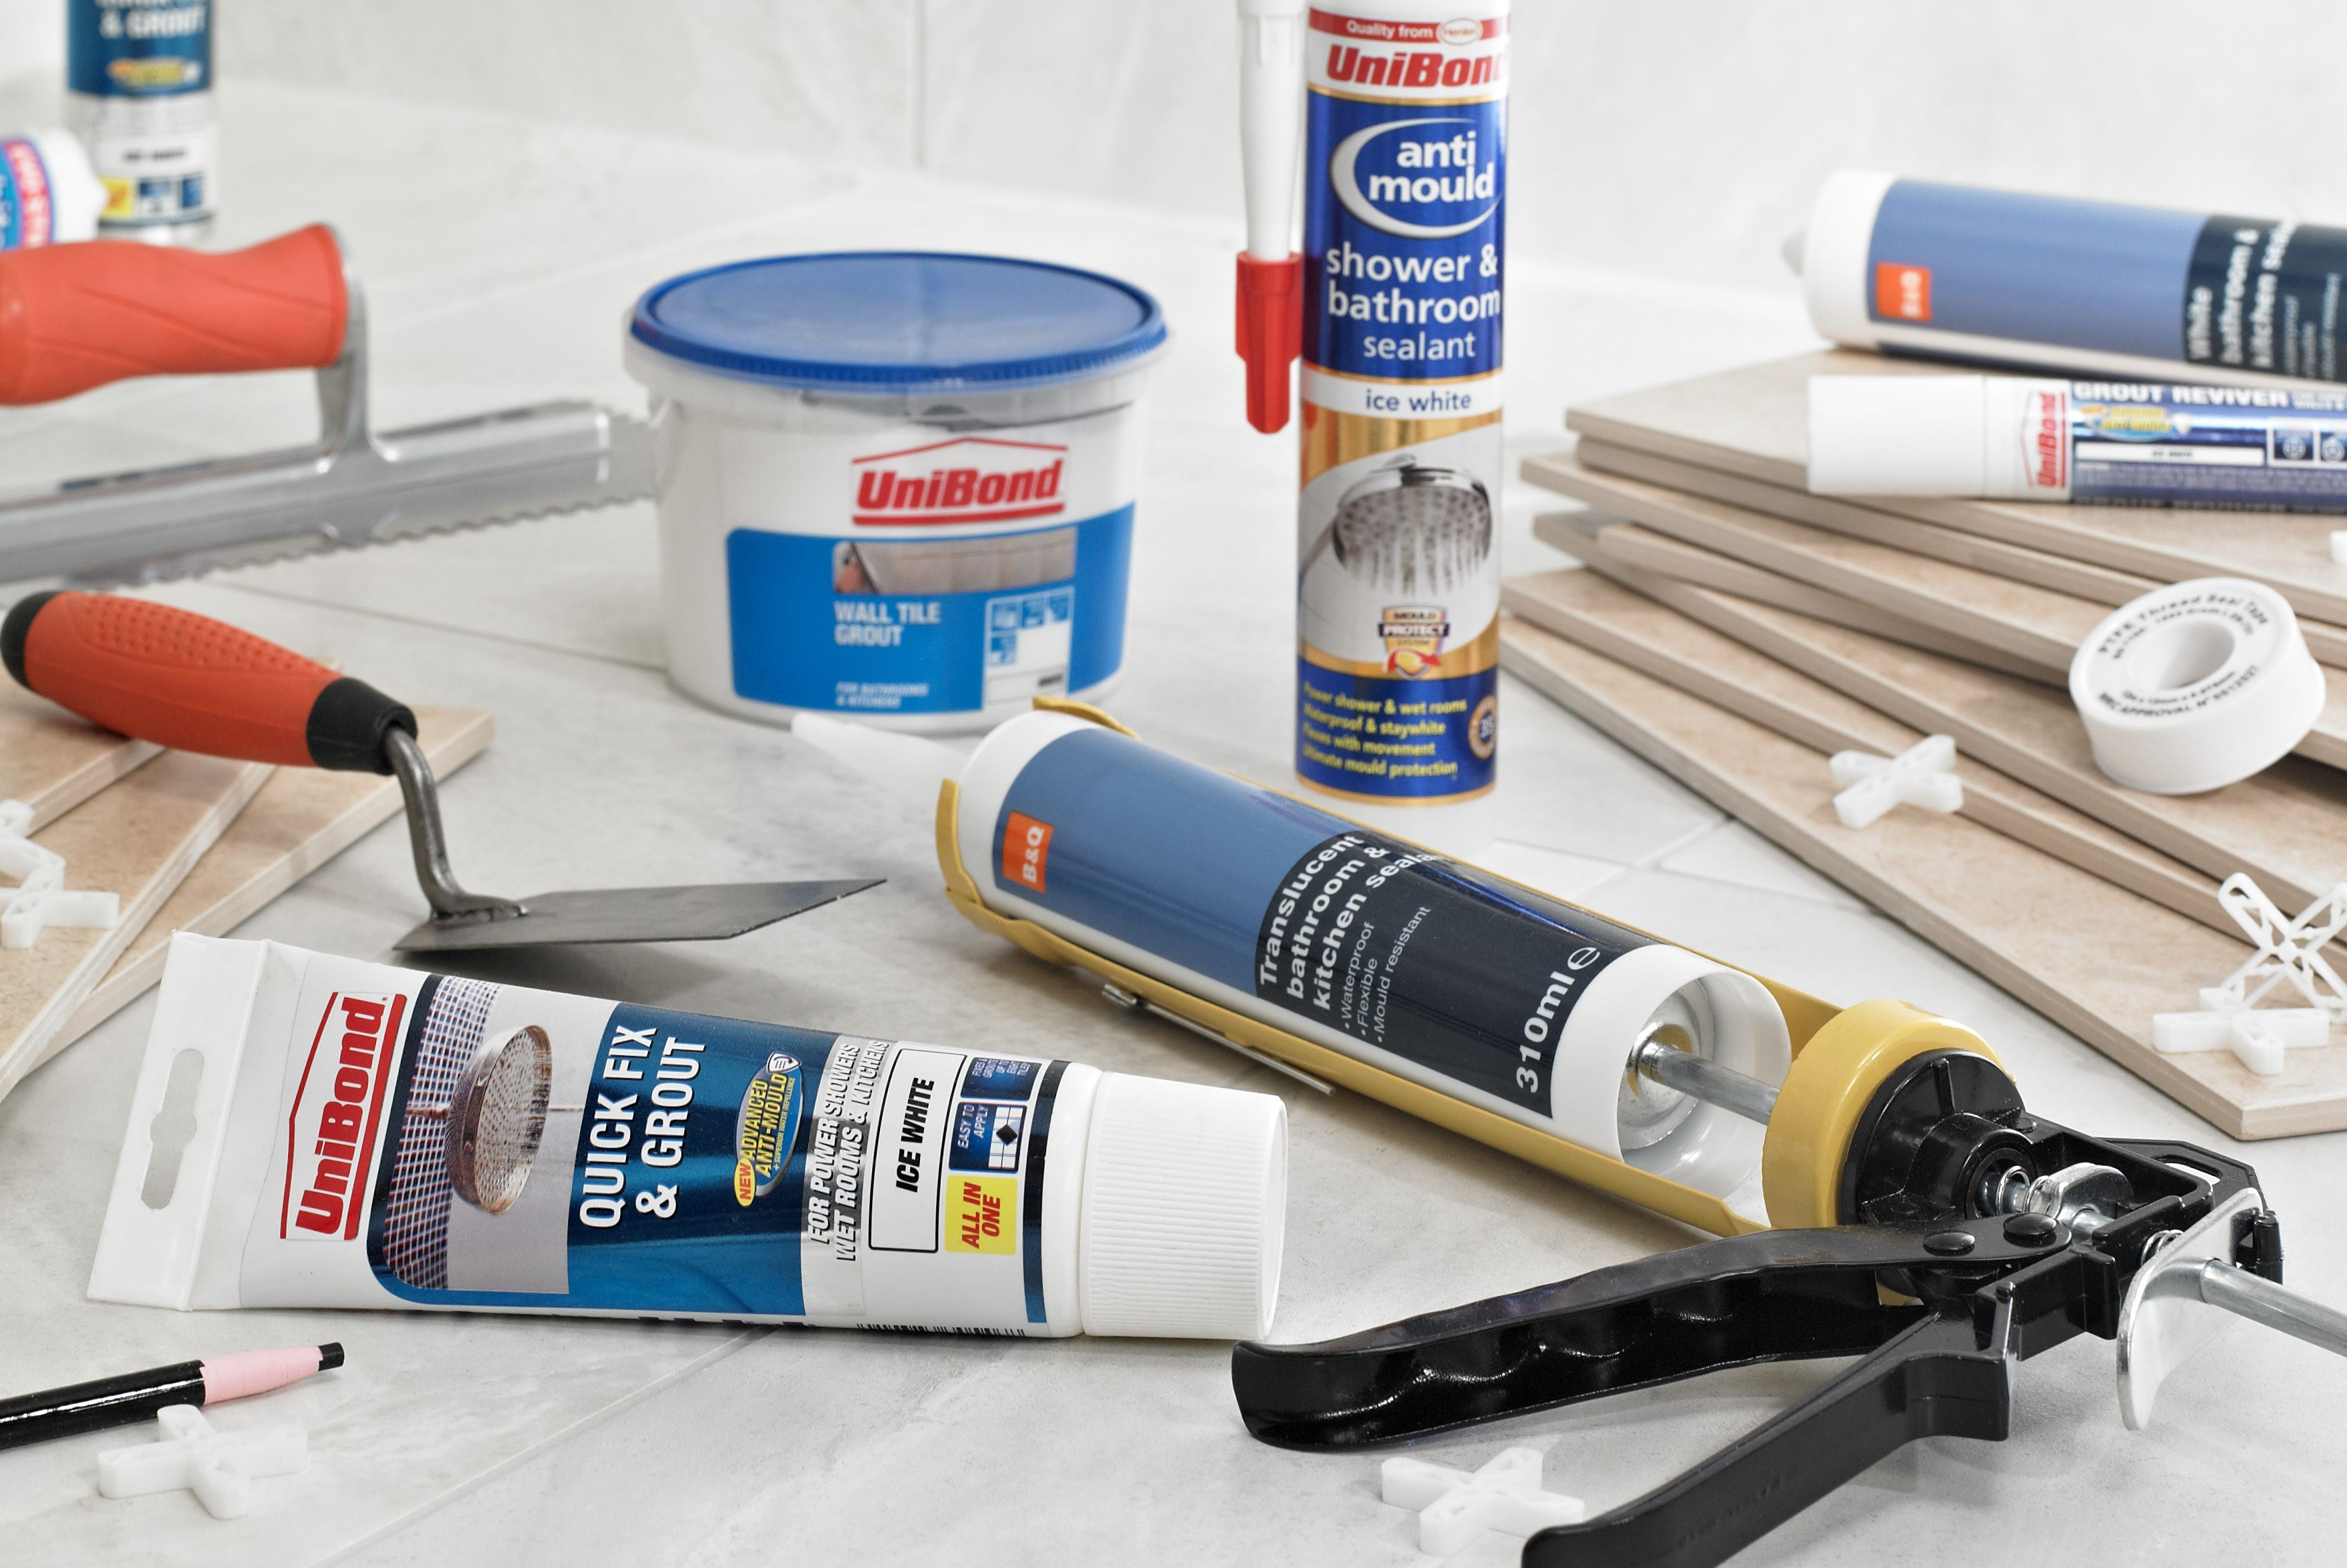 Adhesives & sealants buying guide | Ideas & Advice | DIY at B&Q